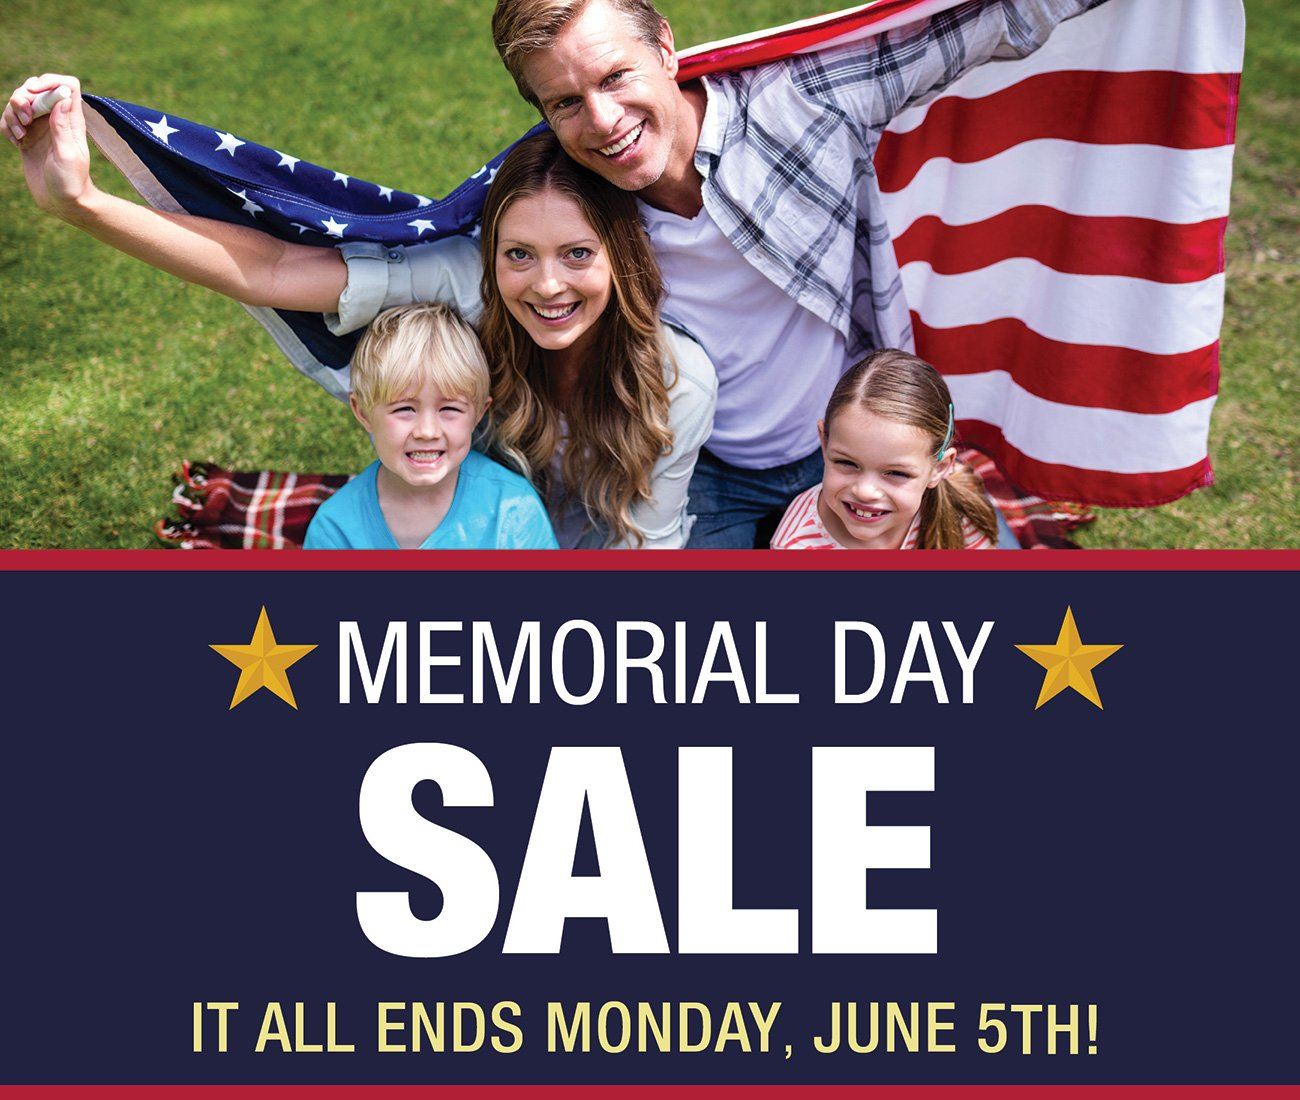 Last Weekend to Save Sale Ends Monday June 5th 🇺🇸